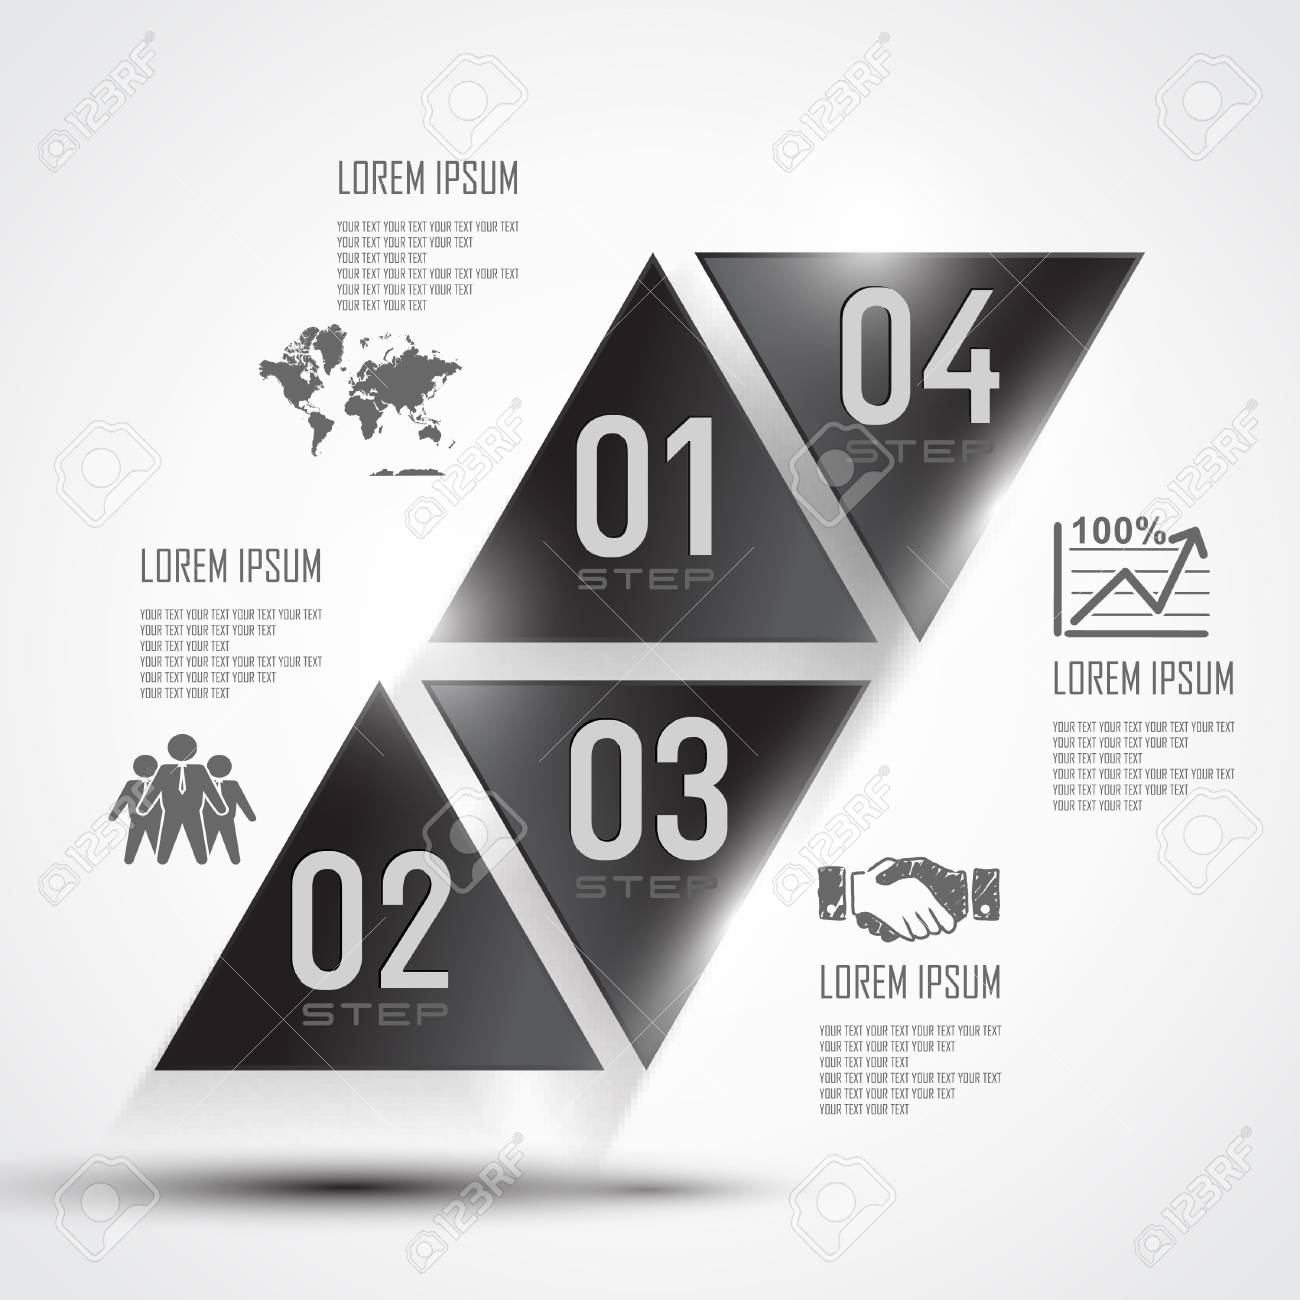 modern design for business 3d triangle info graphic vector